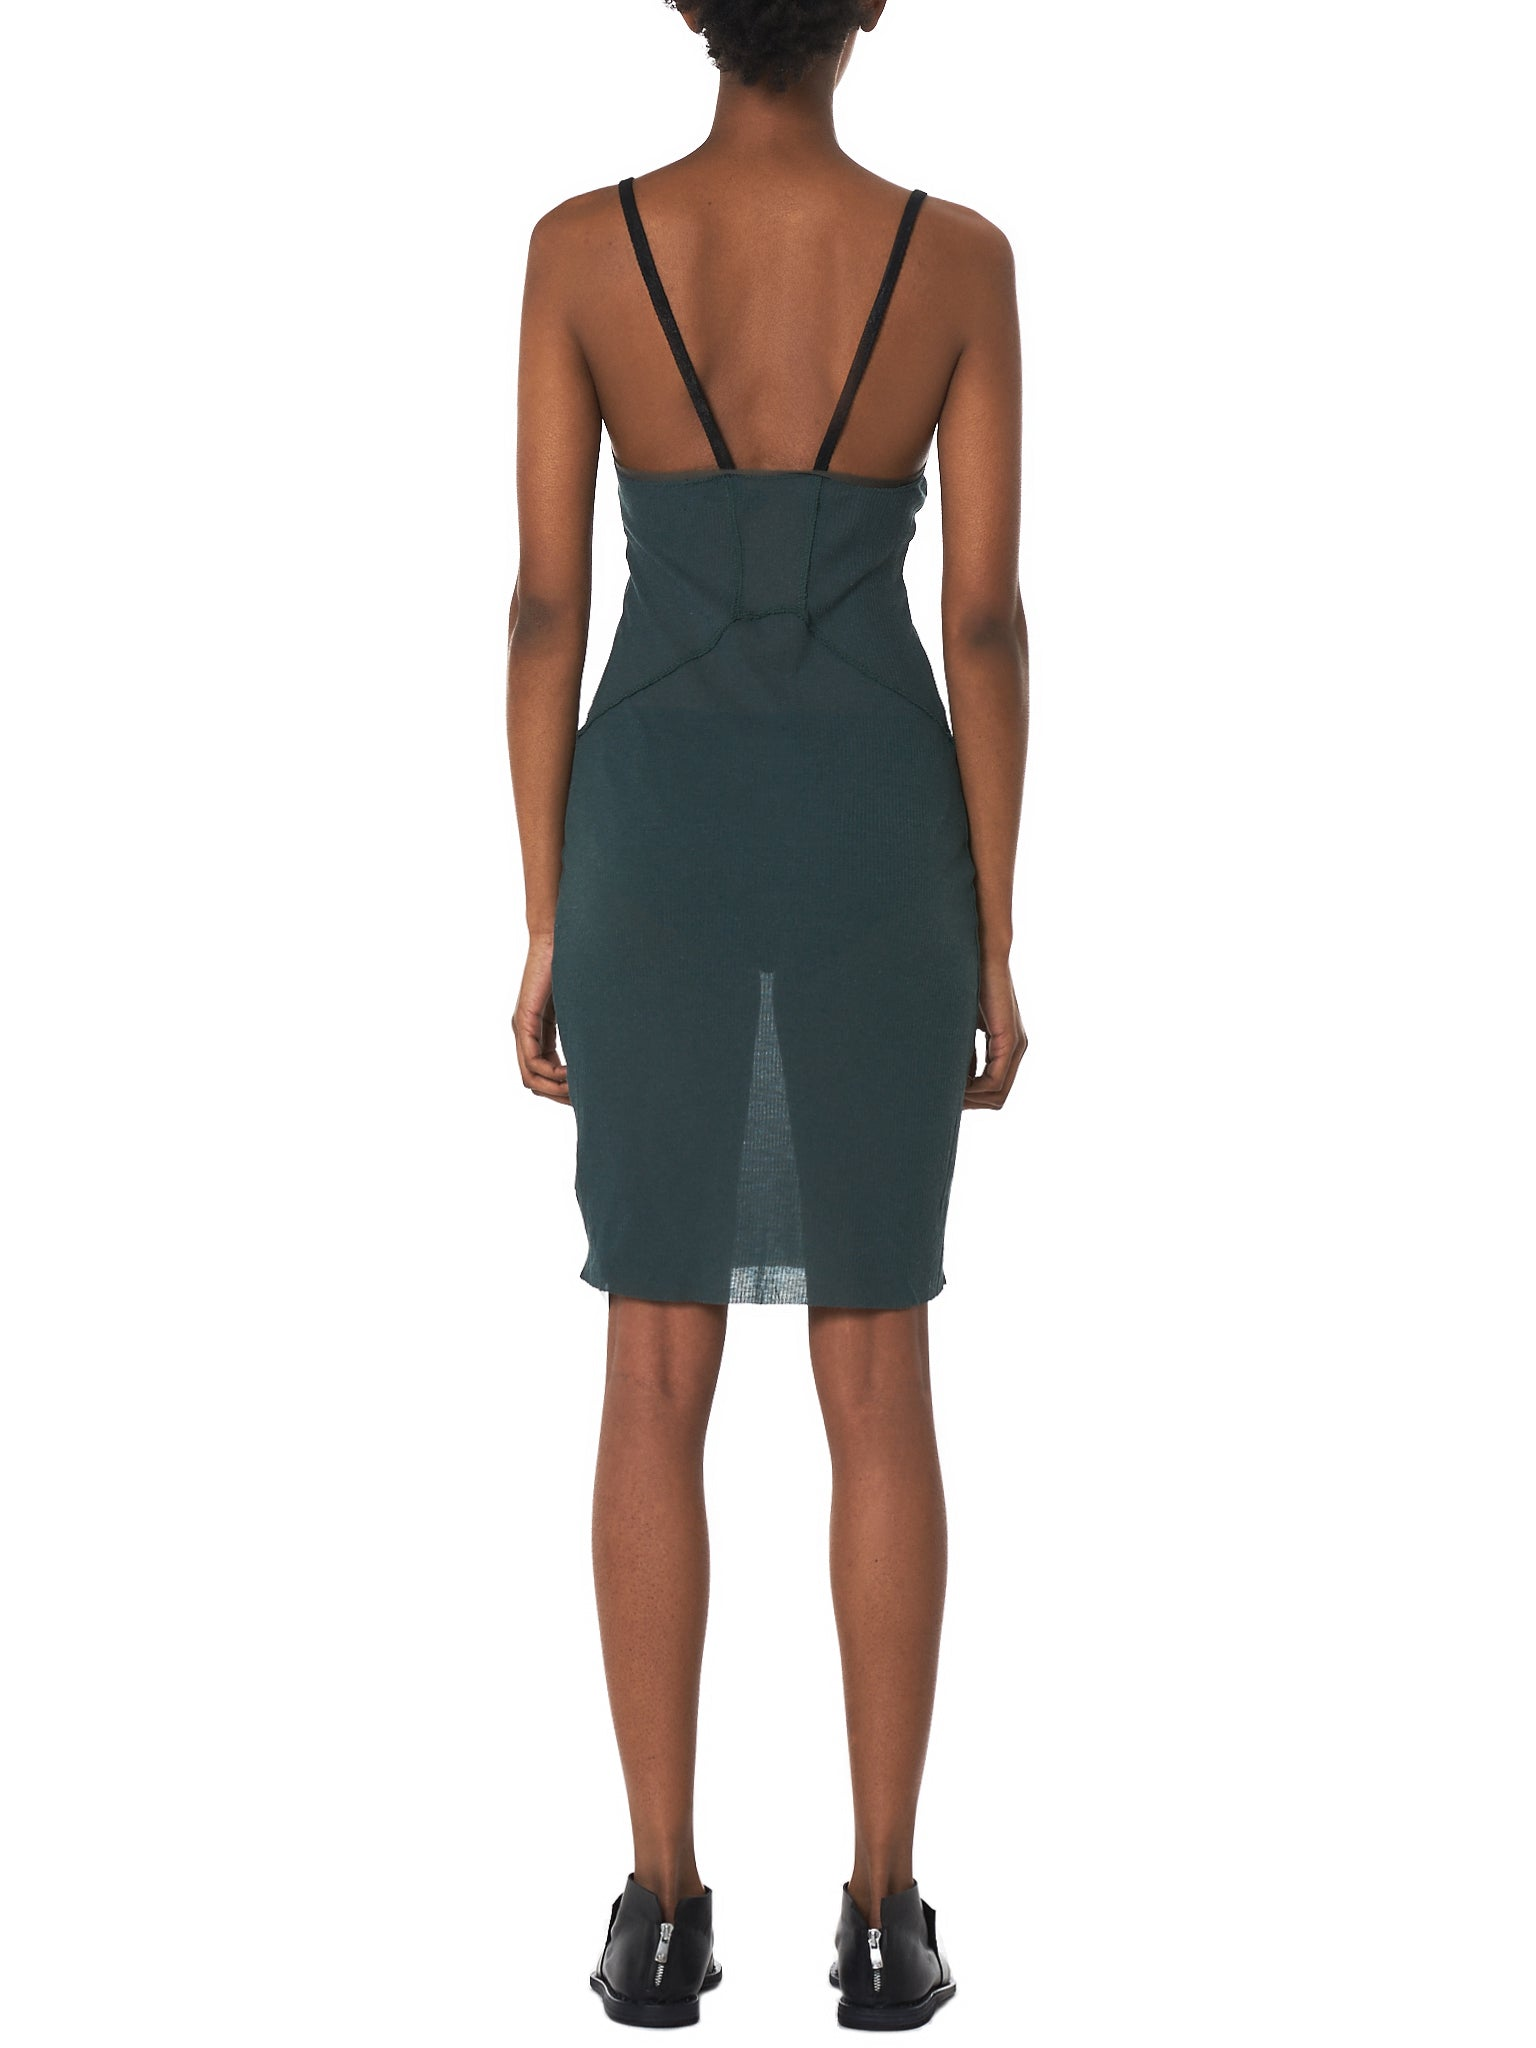 Alessandra Marchi Dress - Hlorenzo Back